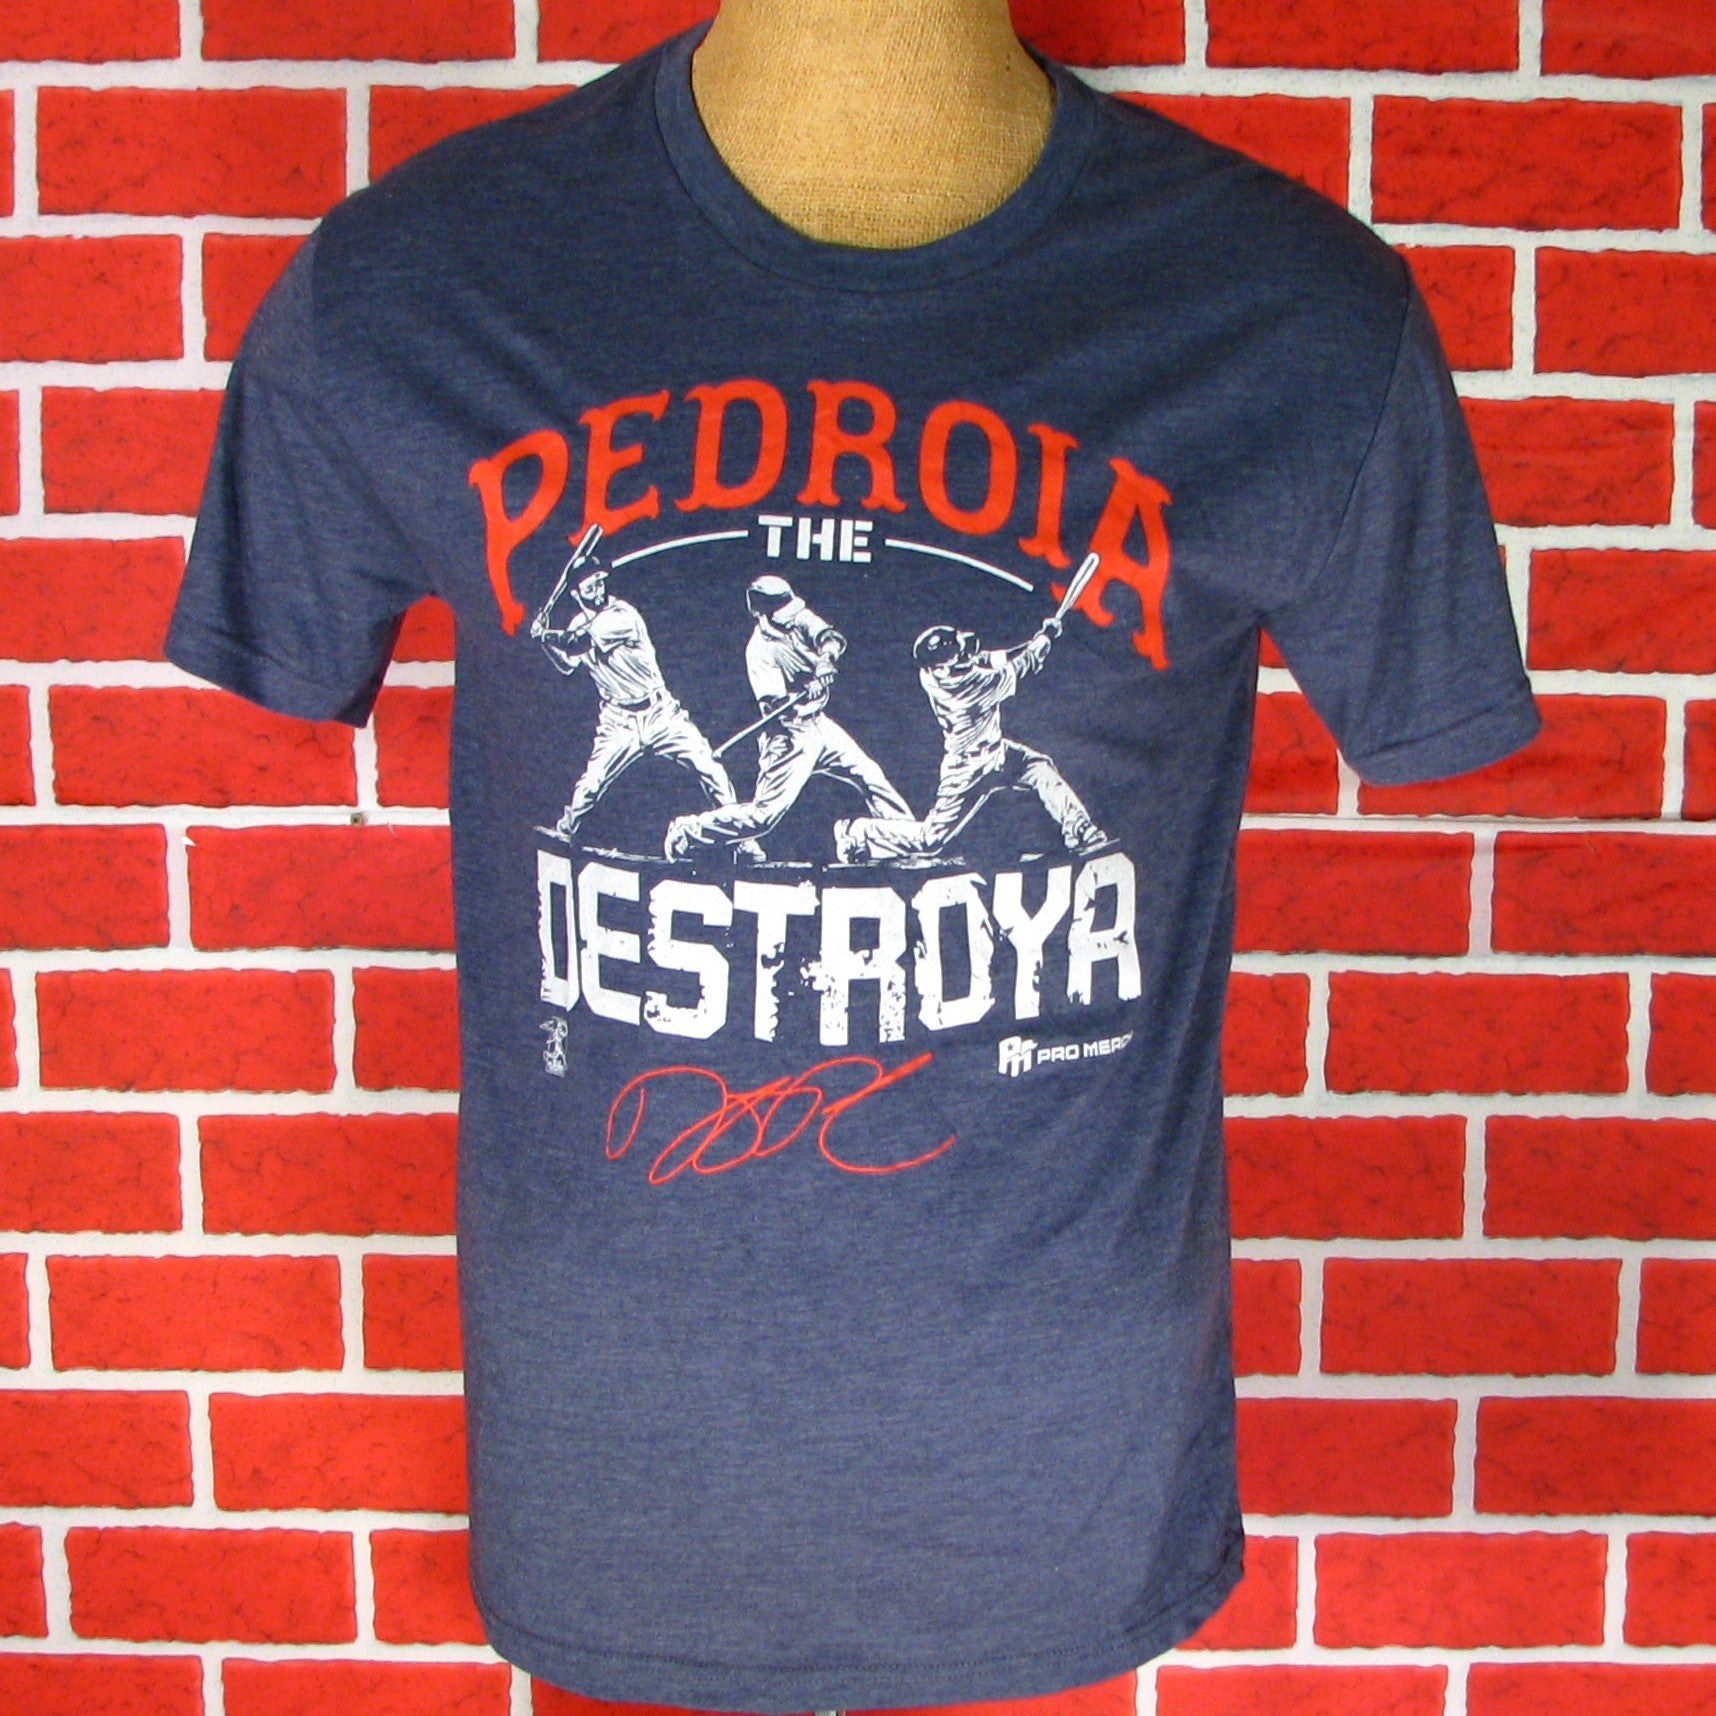 Boston Red Sox Pedroia the Destoya T-Shirt